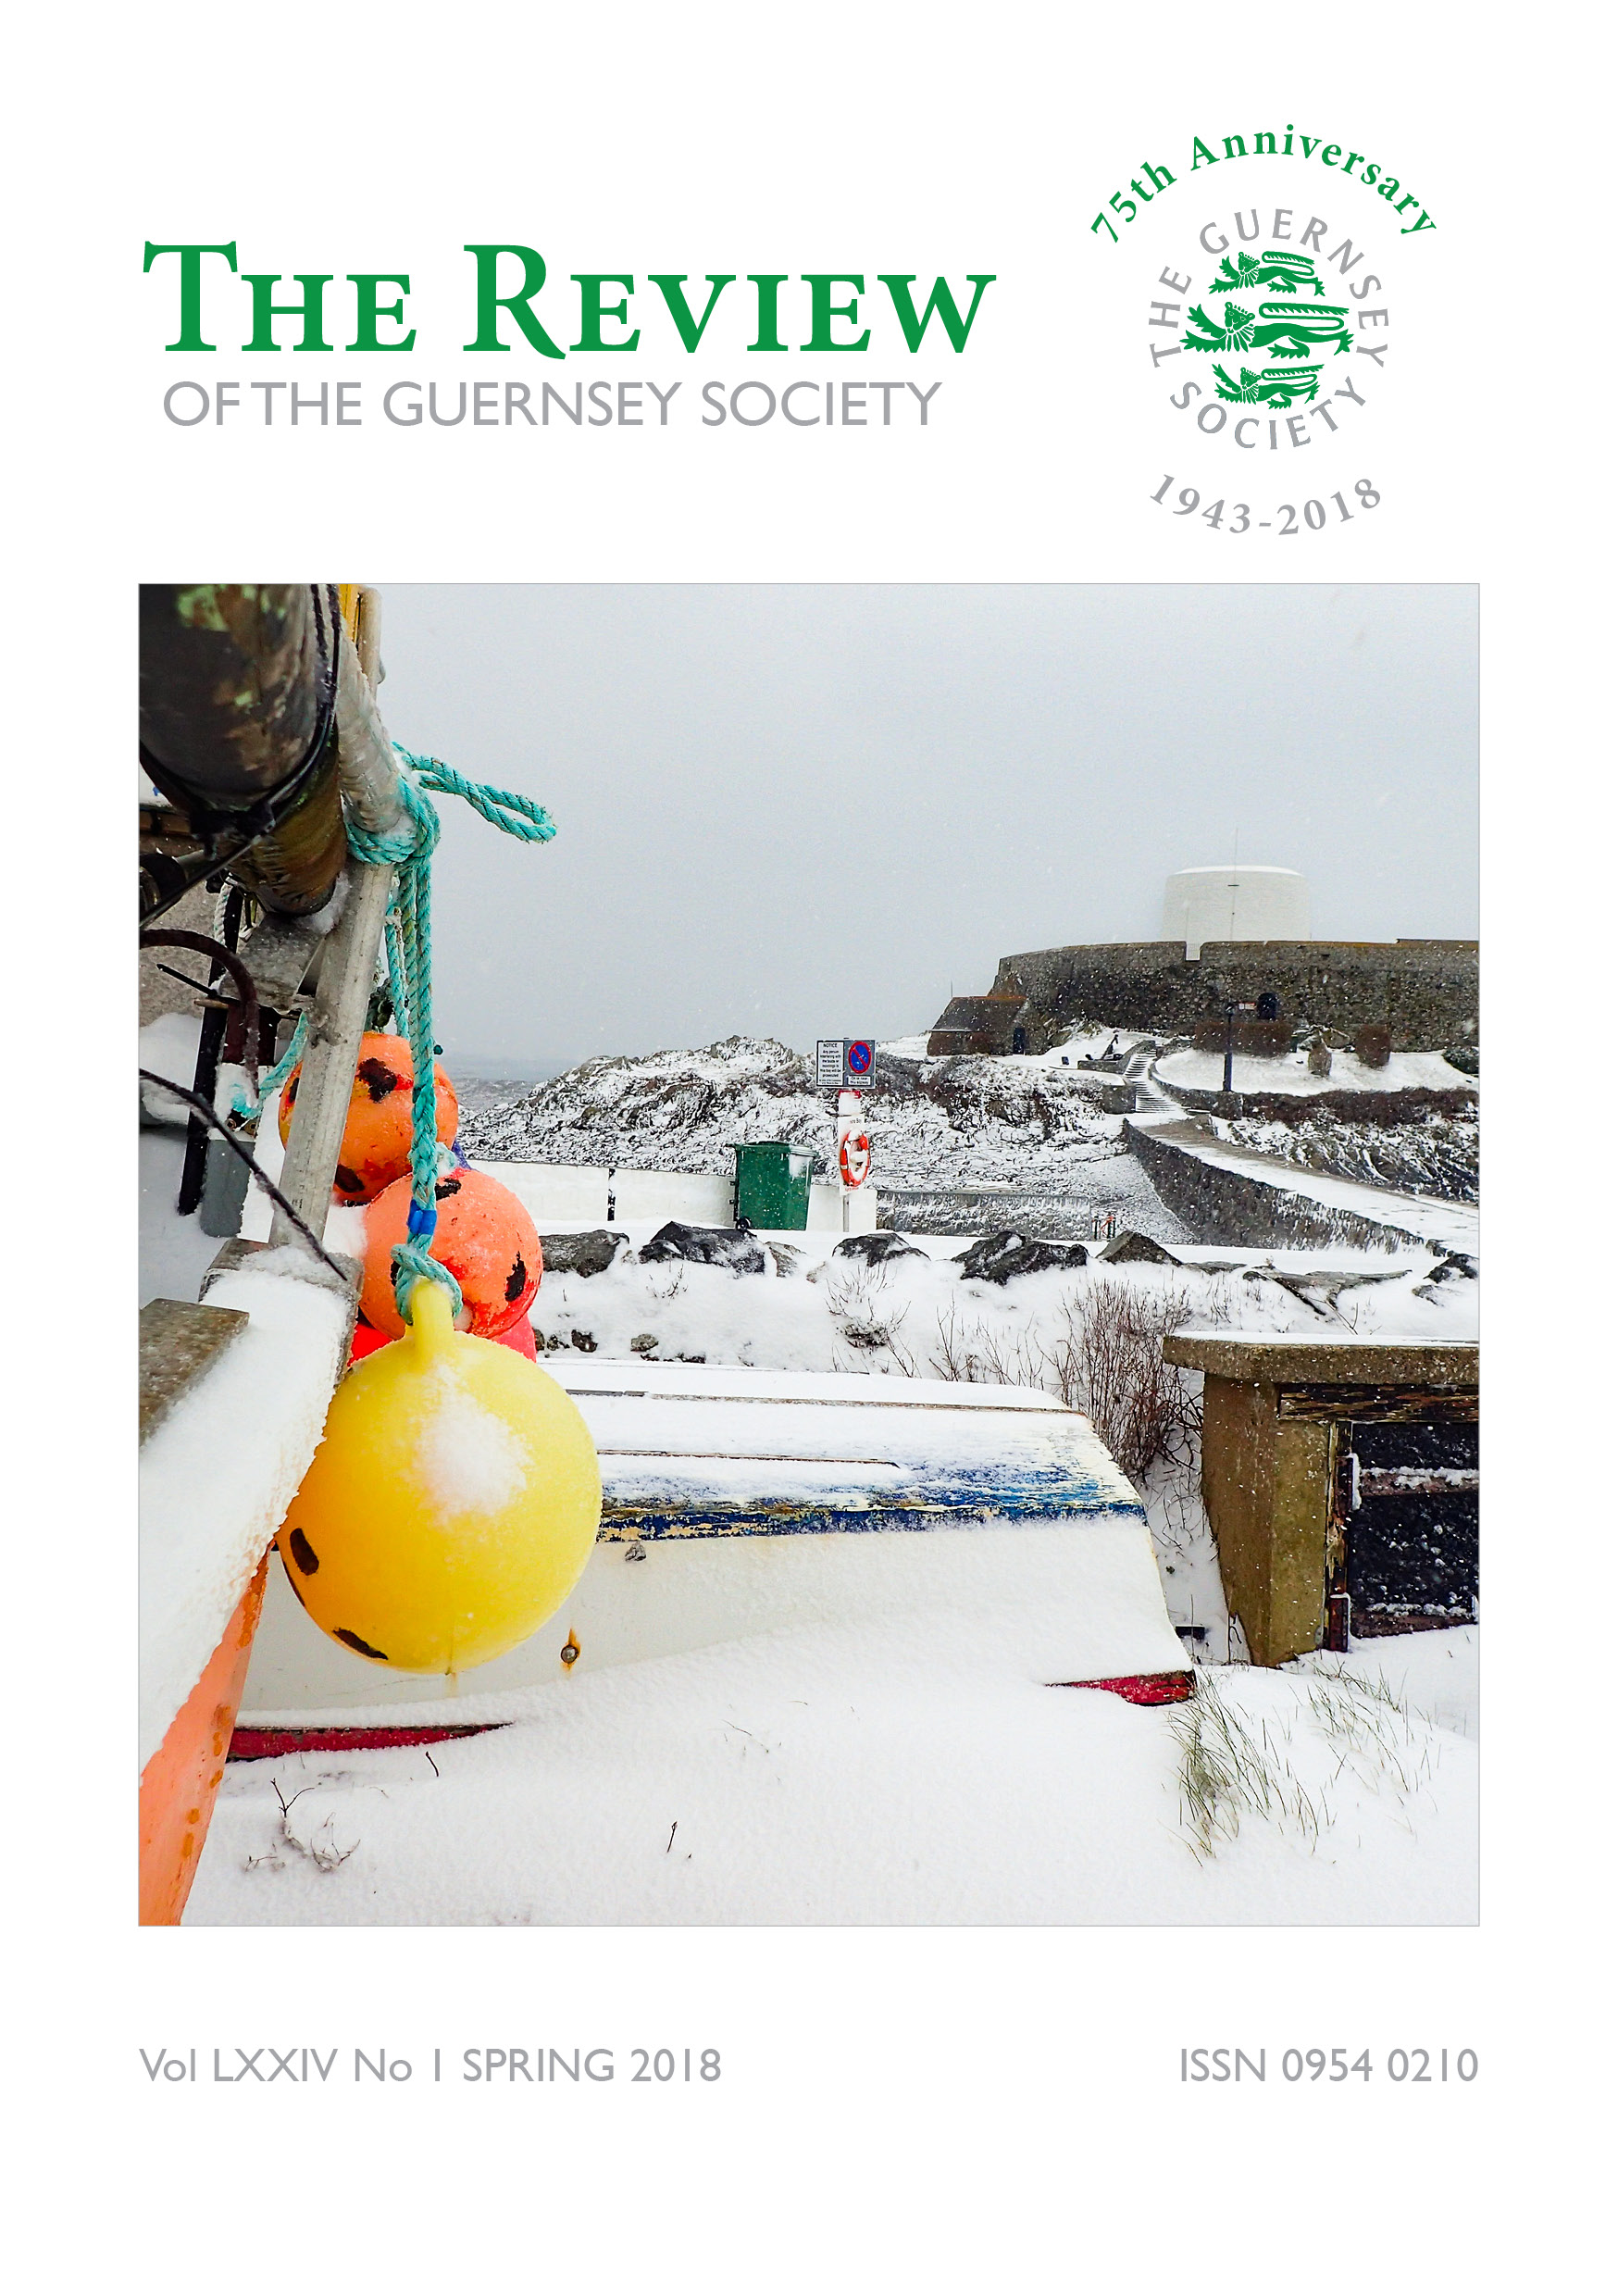 The Review of the Guernsey Society